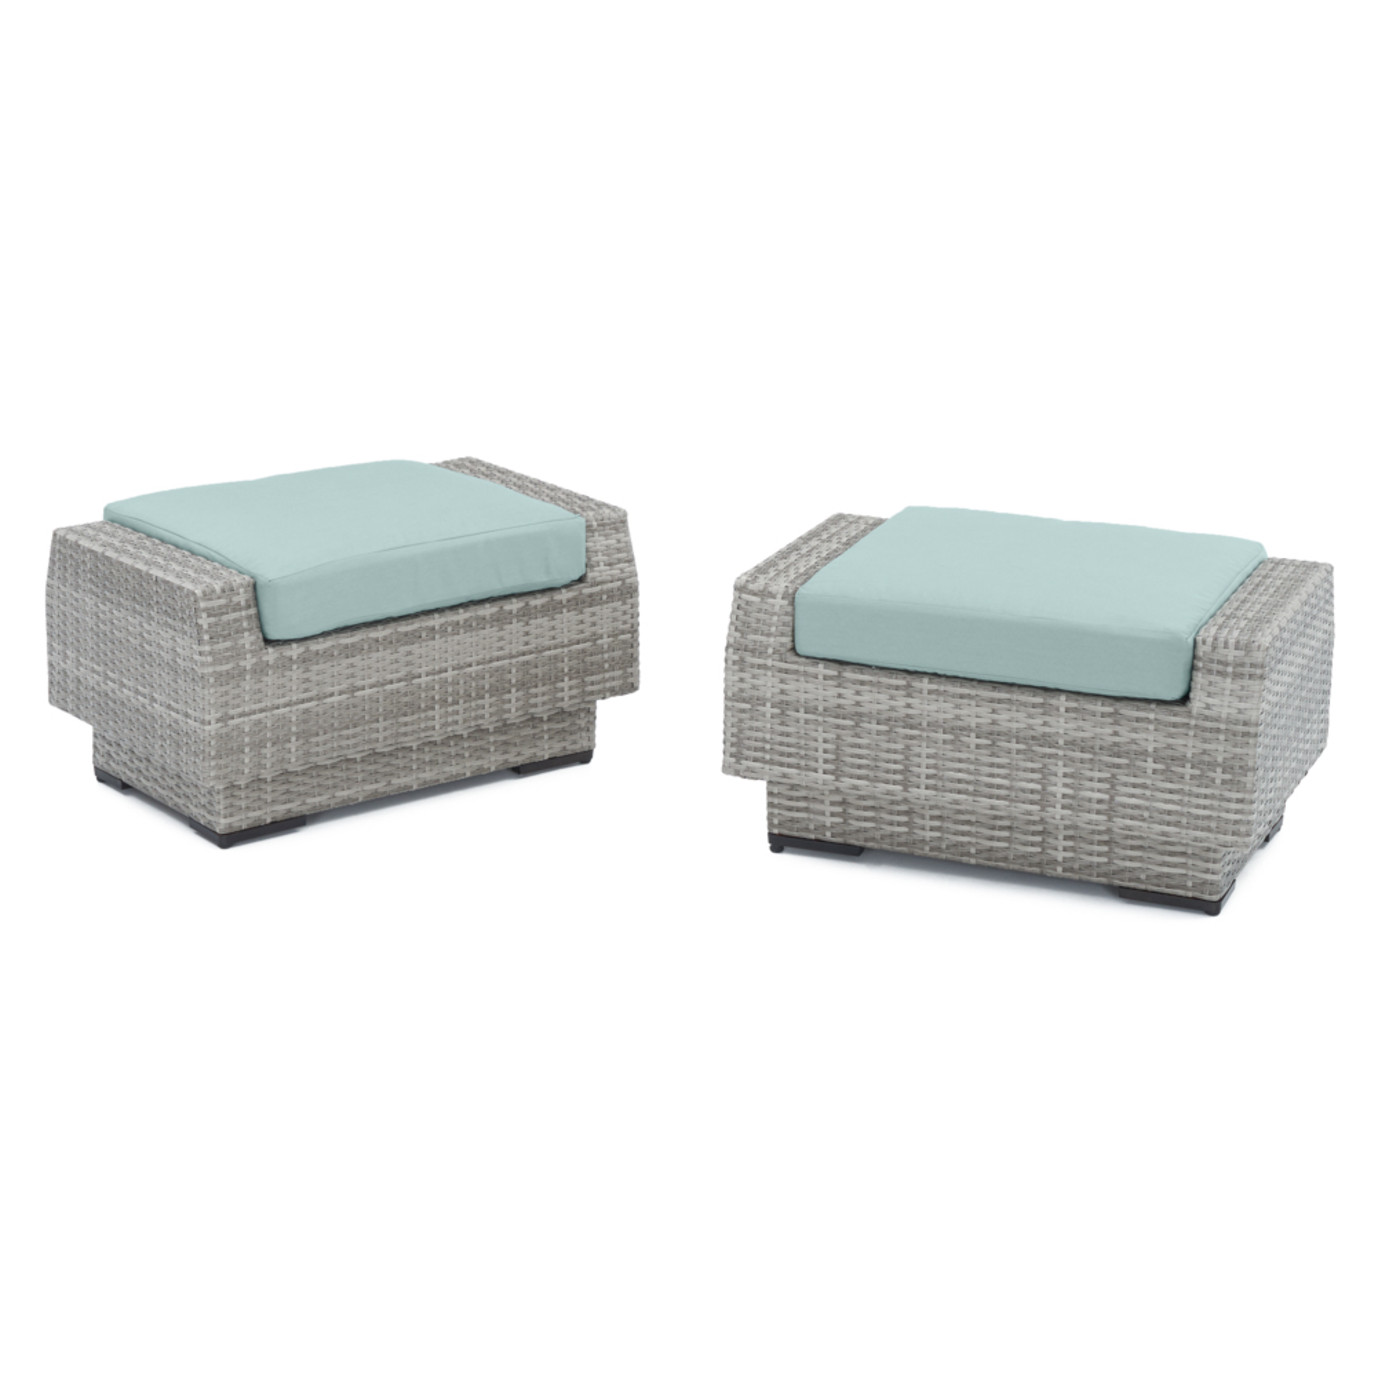 Cannes™ Club Ottomans - Spa Blue